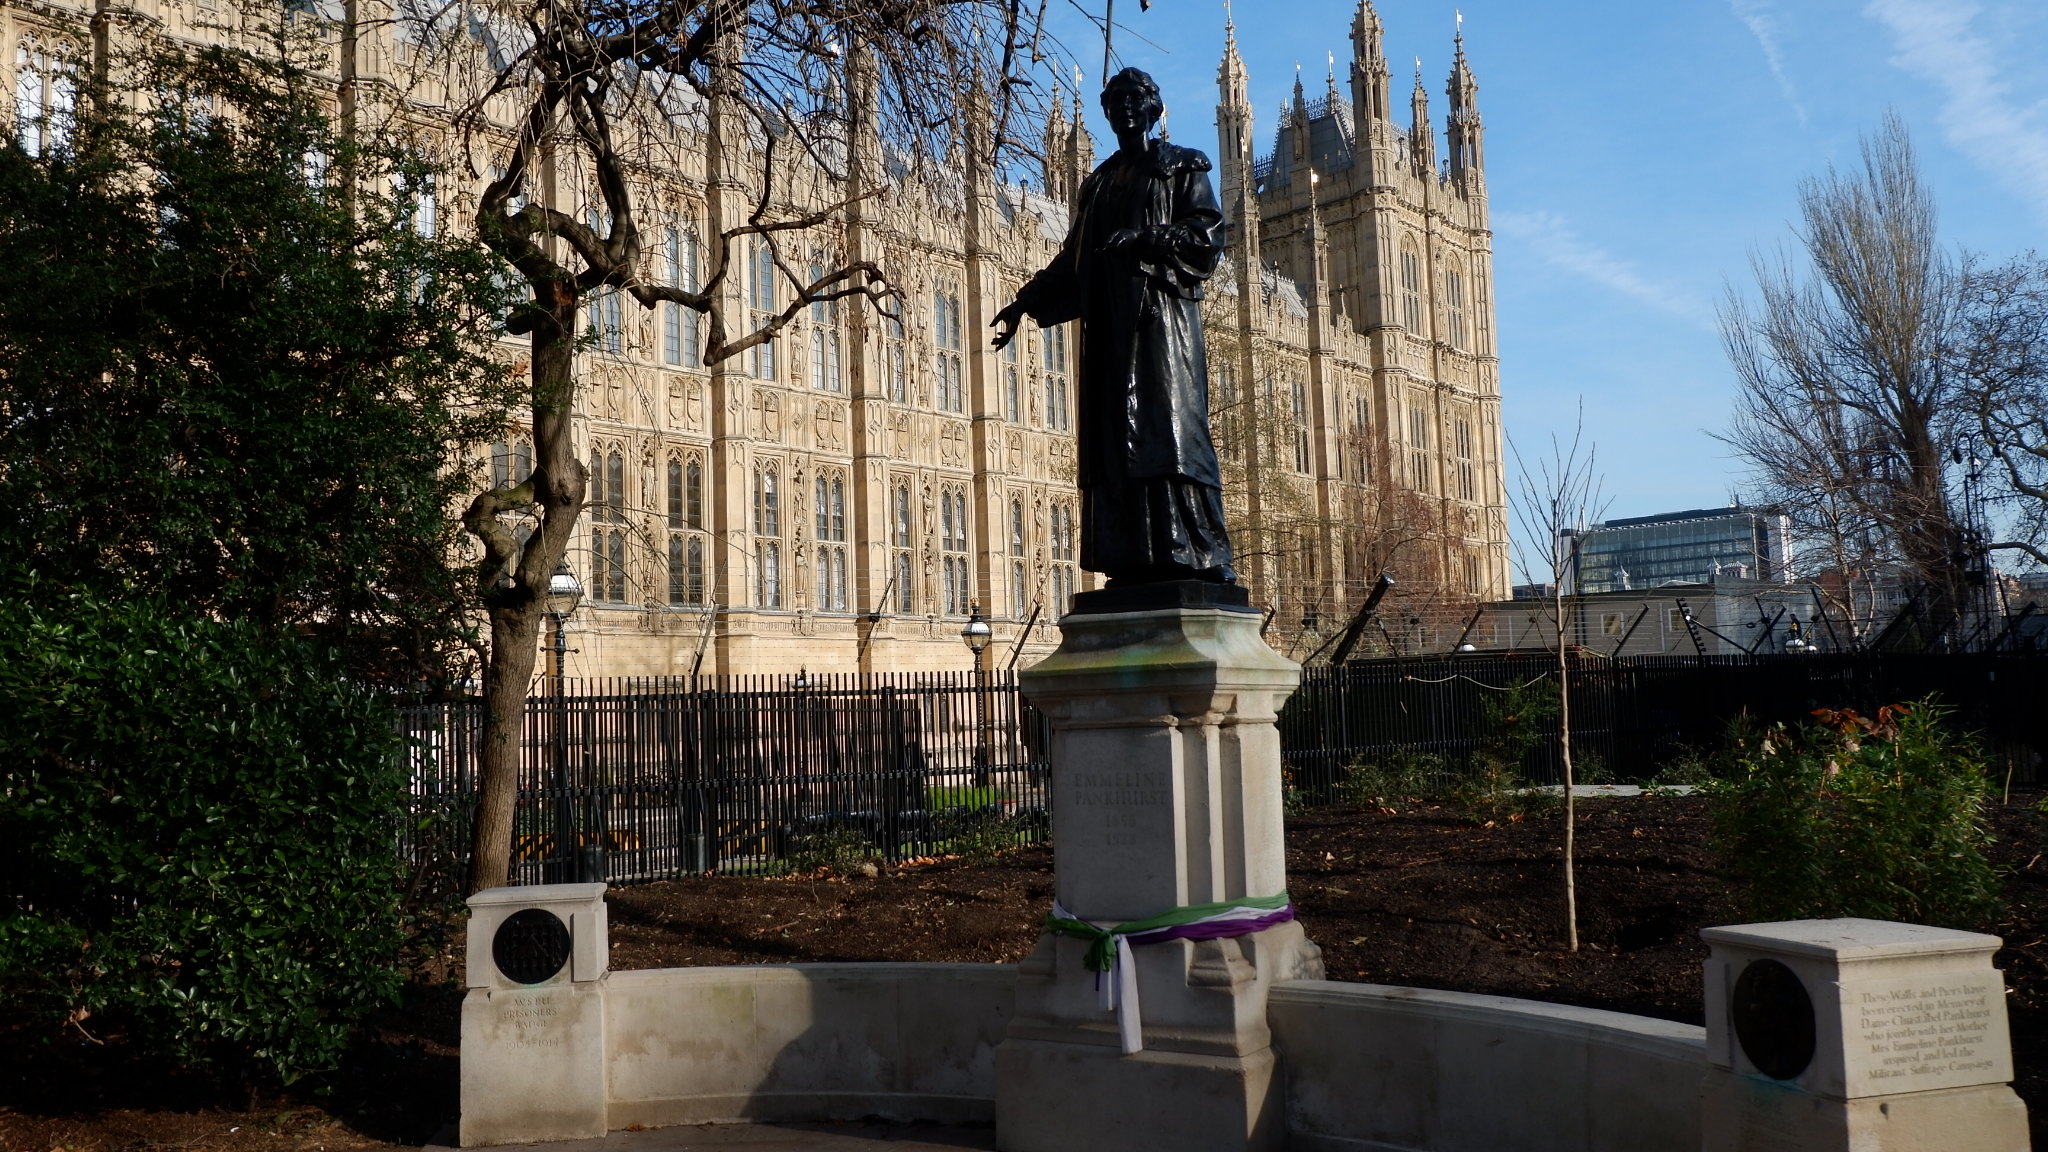 walking tours of london womens history walking tours of london womens history herstory tour guide emmeline pankhurst suffragette house of parliament westminster